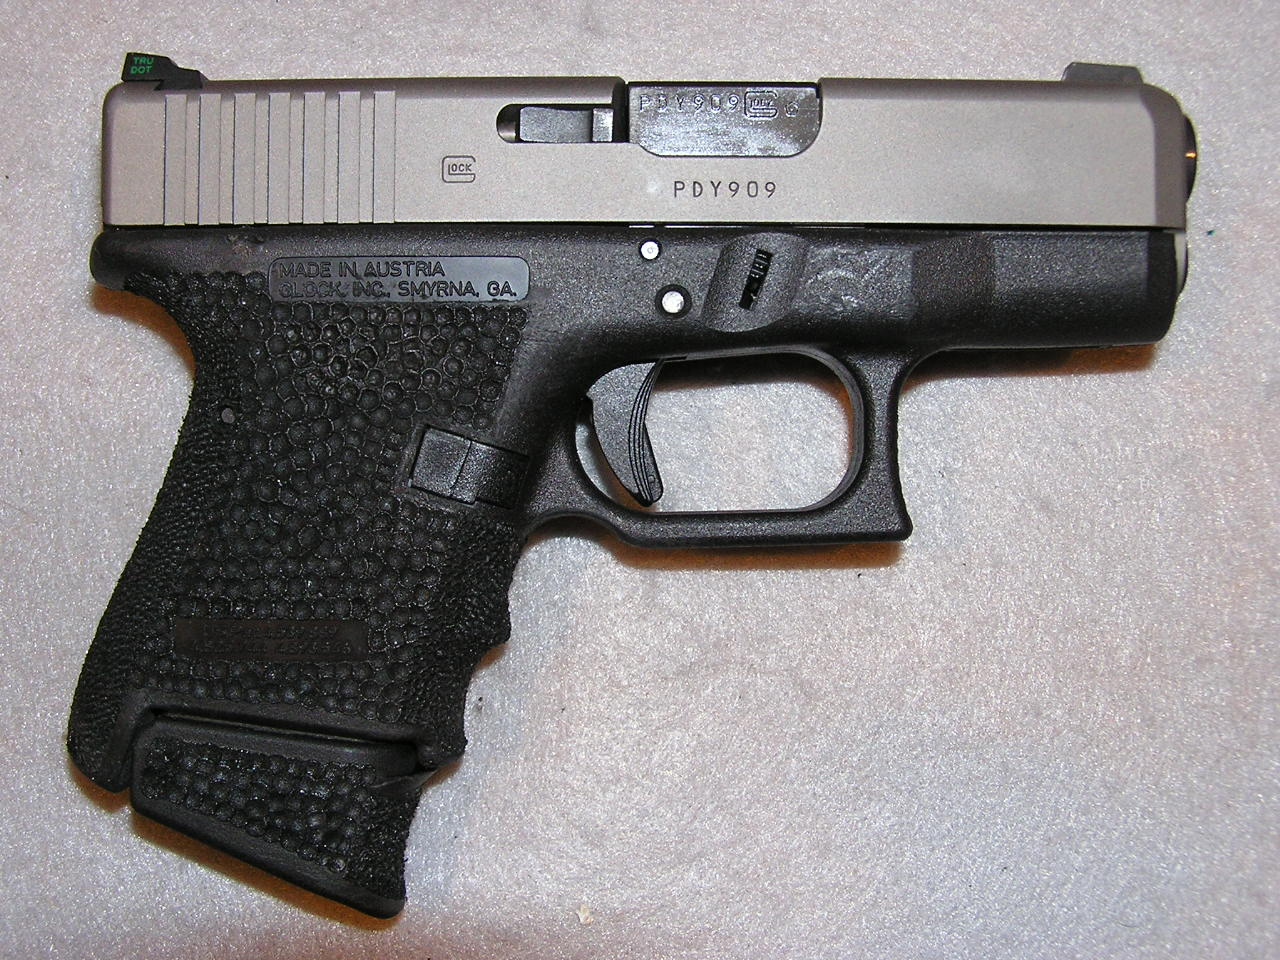 GALLERY: Glock 26/ reduction and mineral blast profiled slide